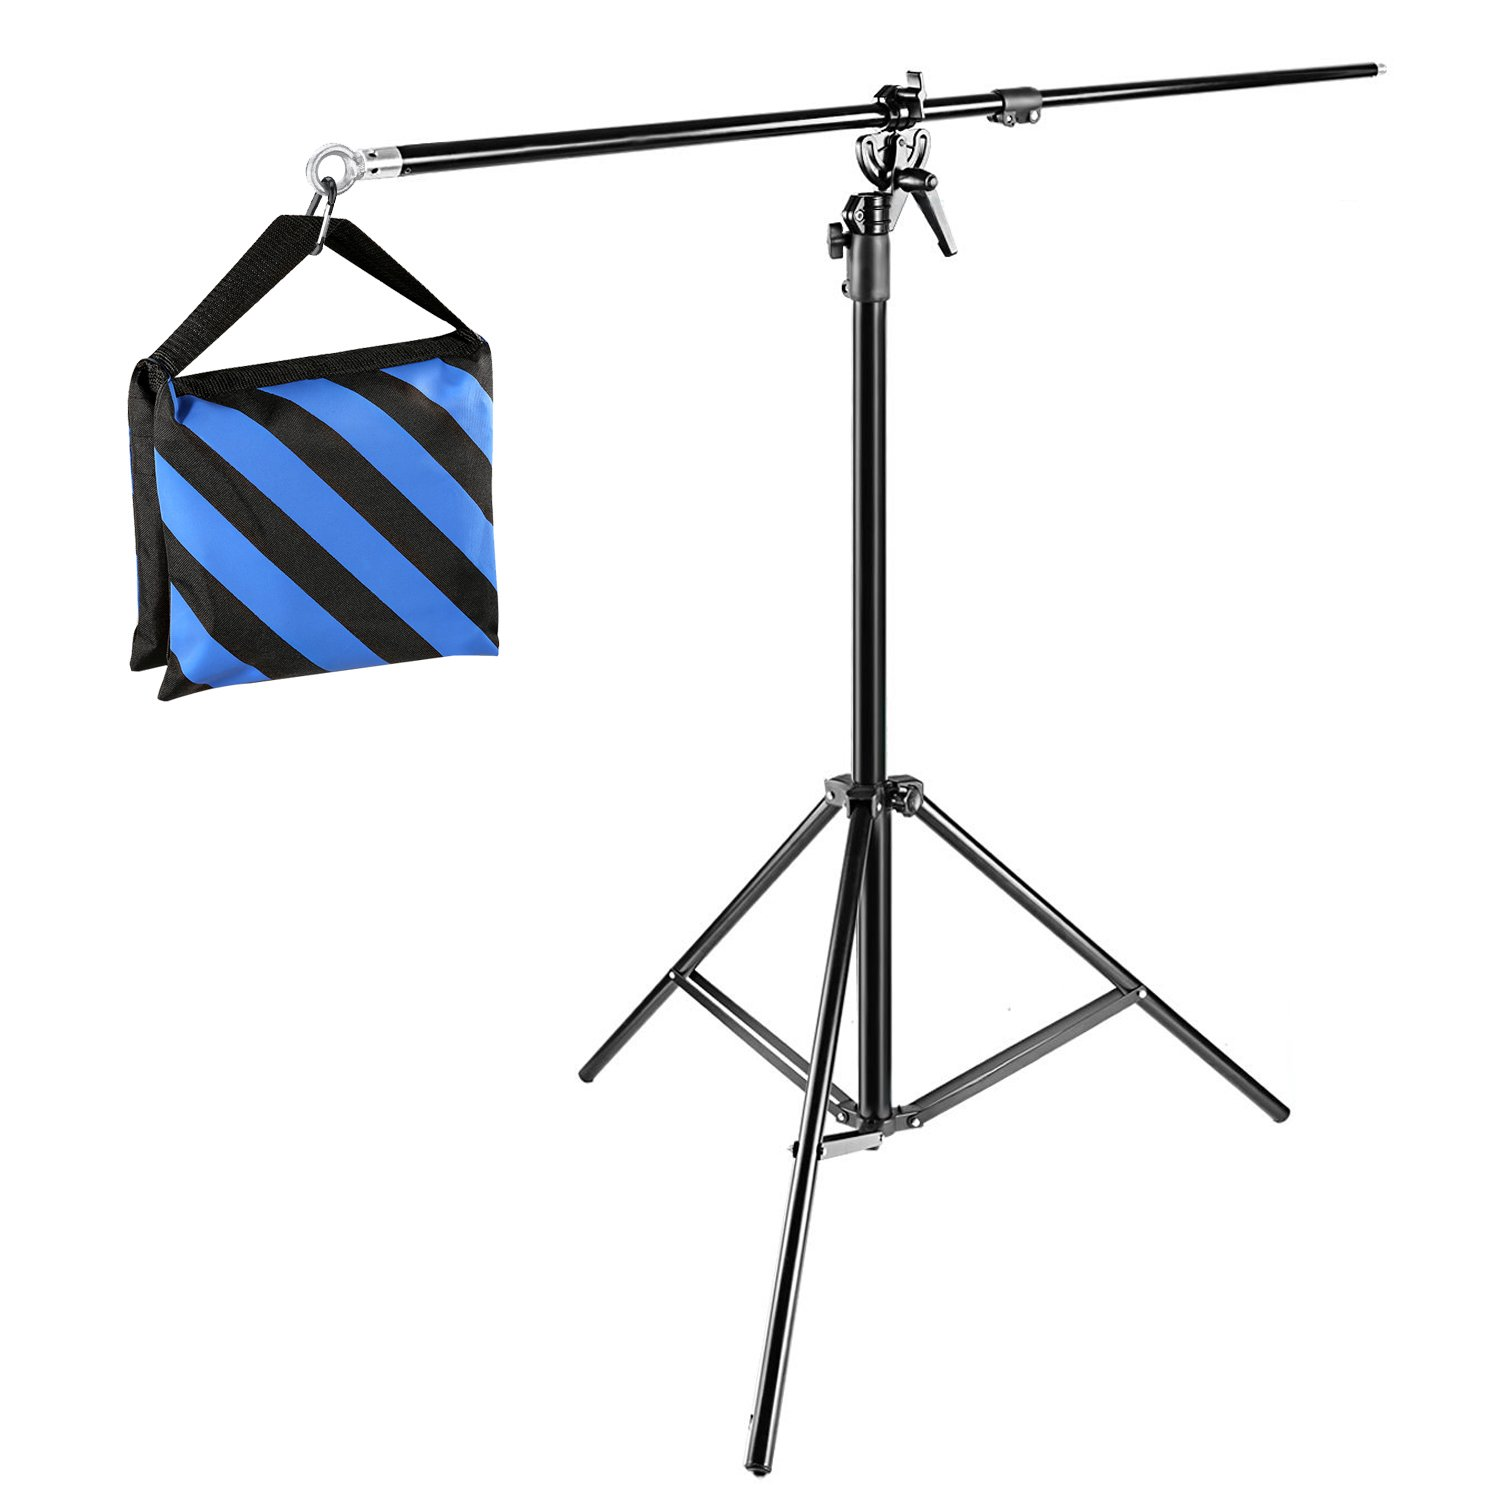 Neewer® 10ft/3M Two Way Rotable Tripod Boom Light Stand with Sandbag for Photo Photography Video Studio 10087456@@##1